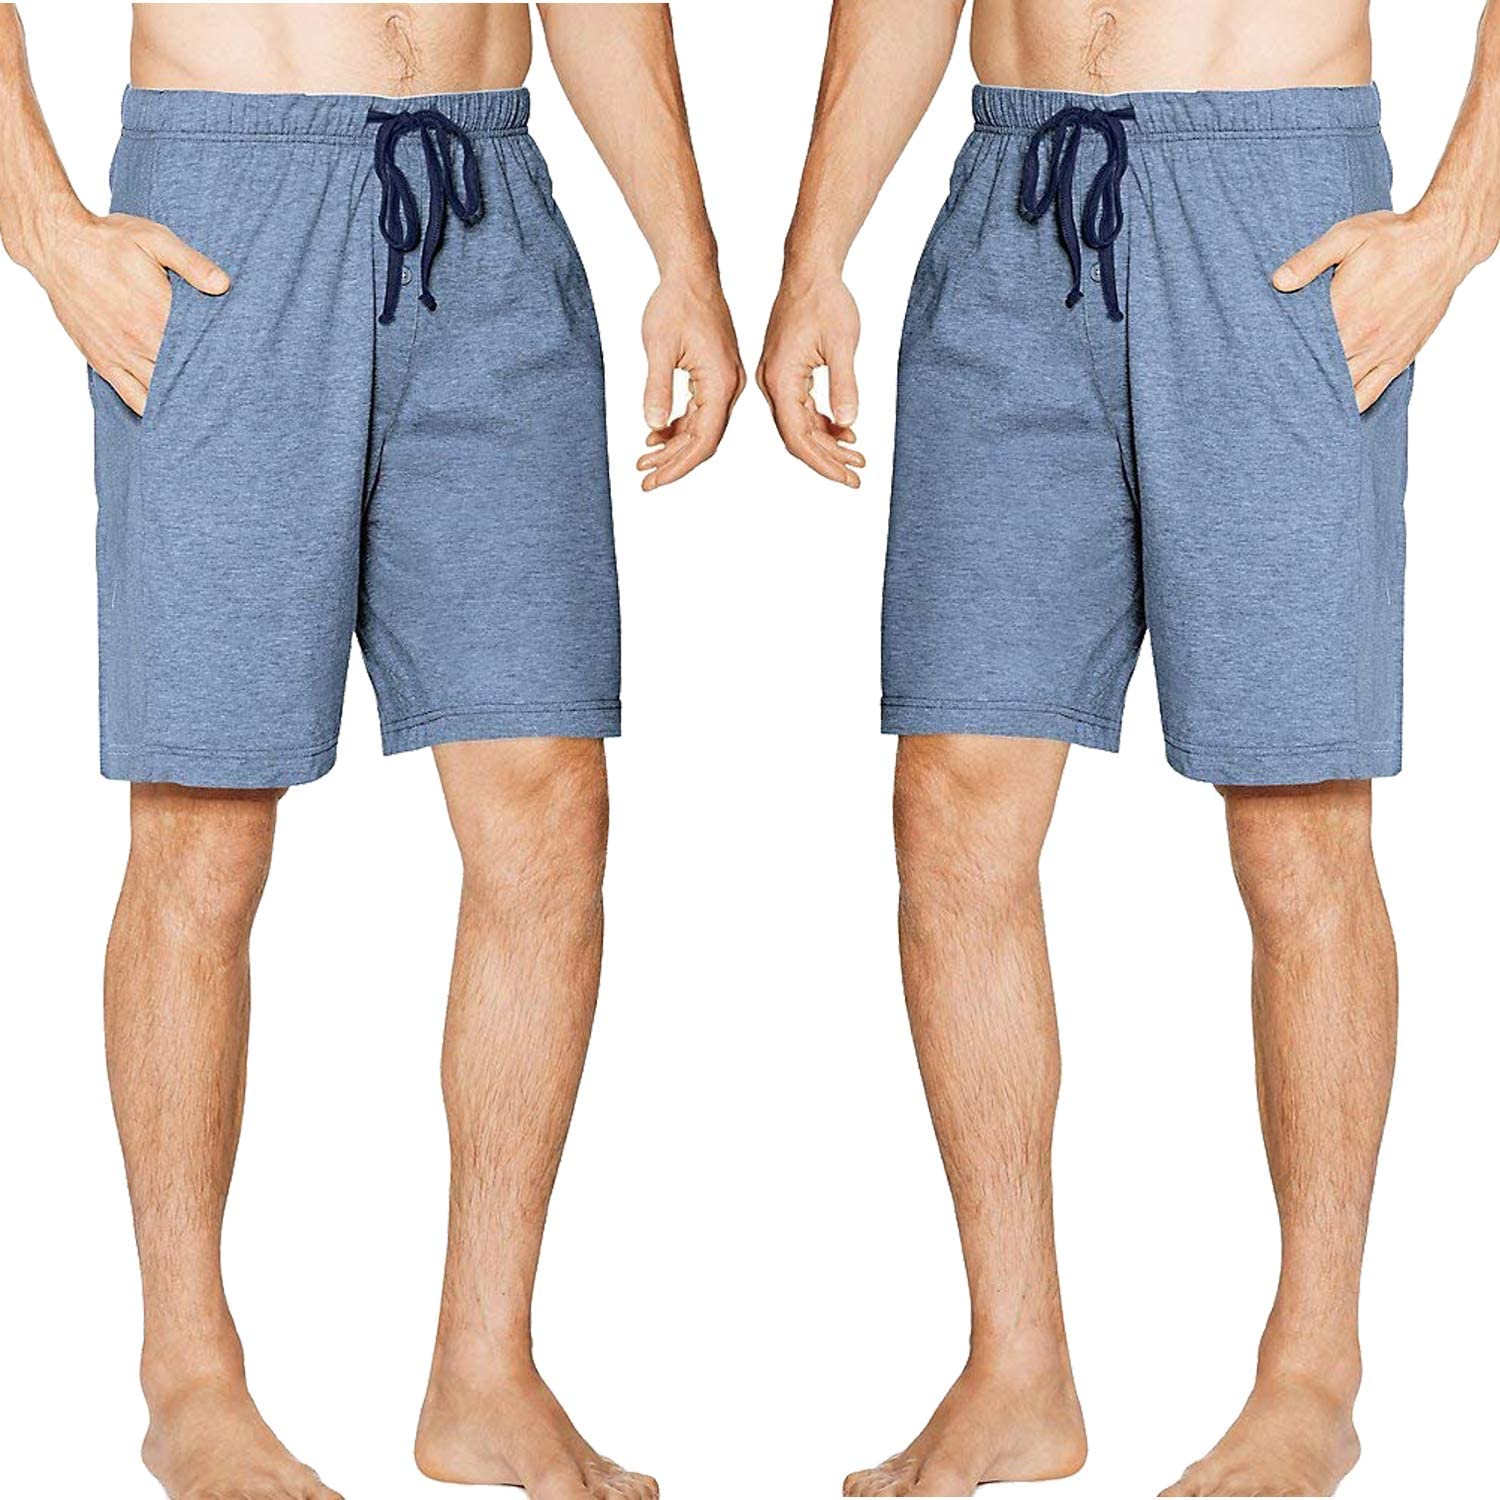 SGNOIEY Men's 5% OFF Sleep Shorts Limited price sale Cotton 100% Loung Knit